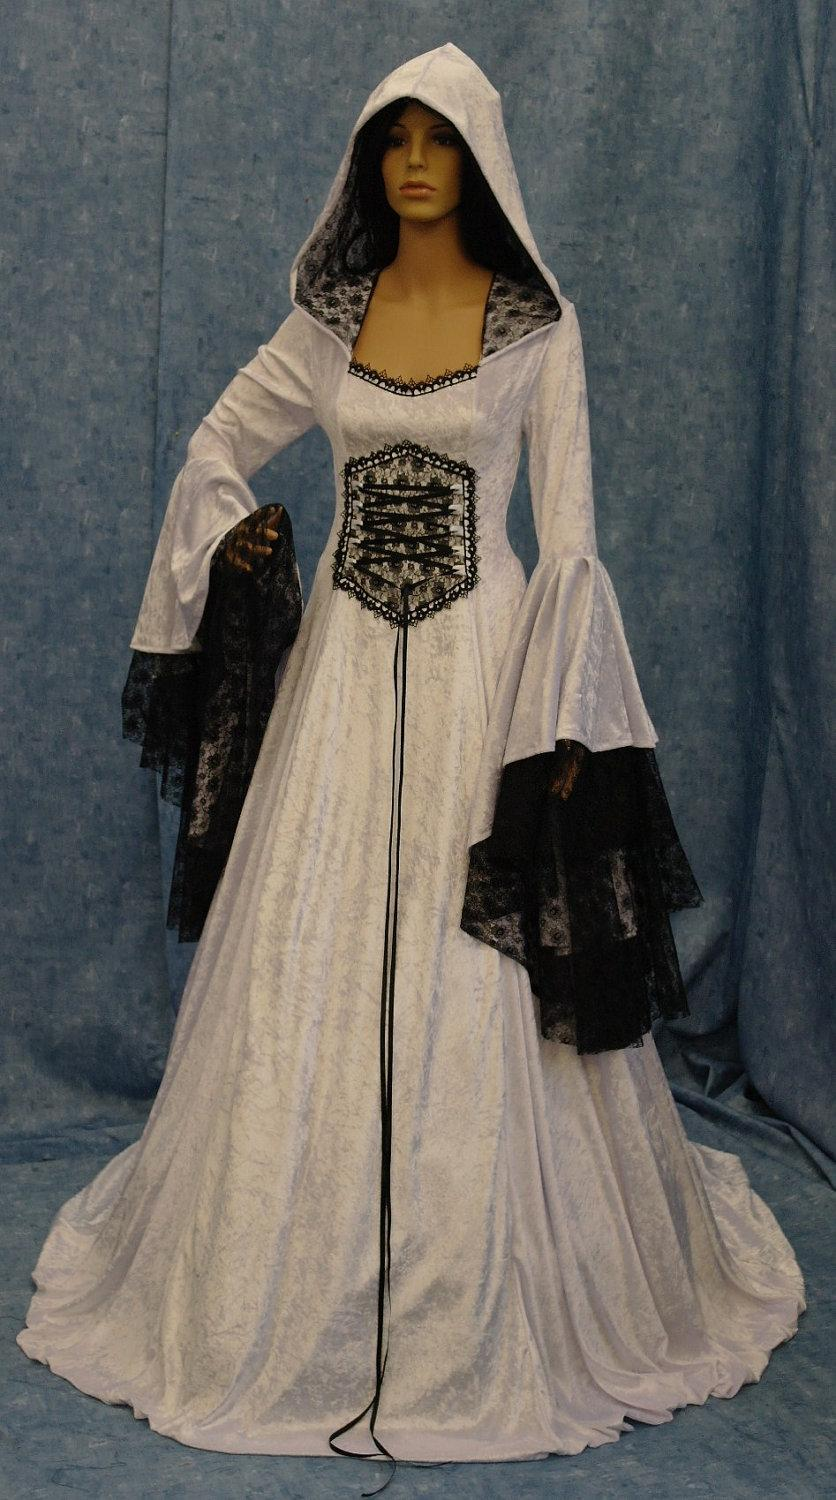 Renaissance Wedding Dress Meval Elven Fantasy Black And White